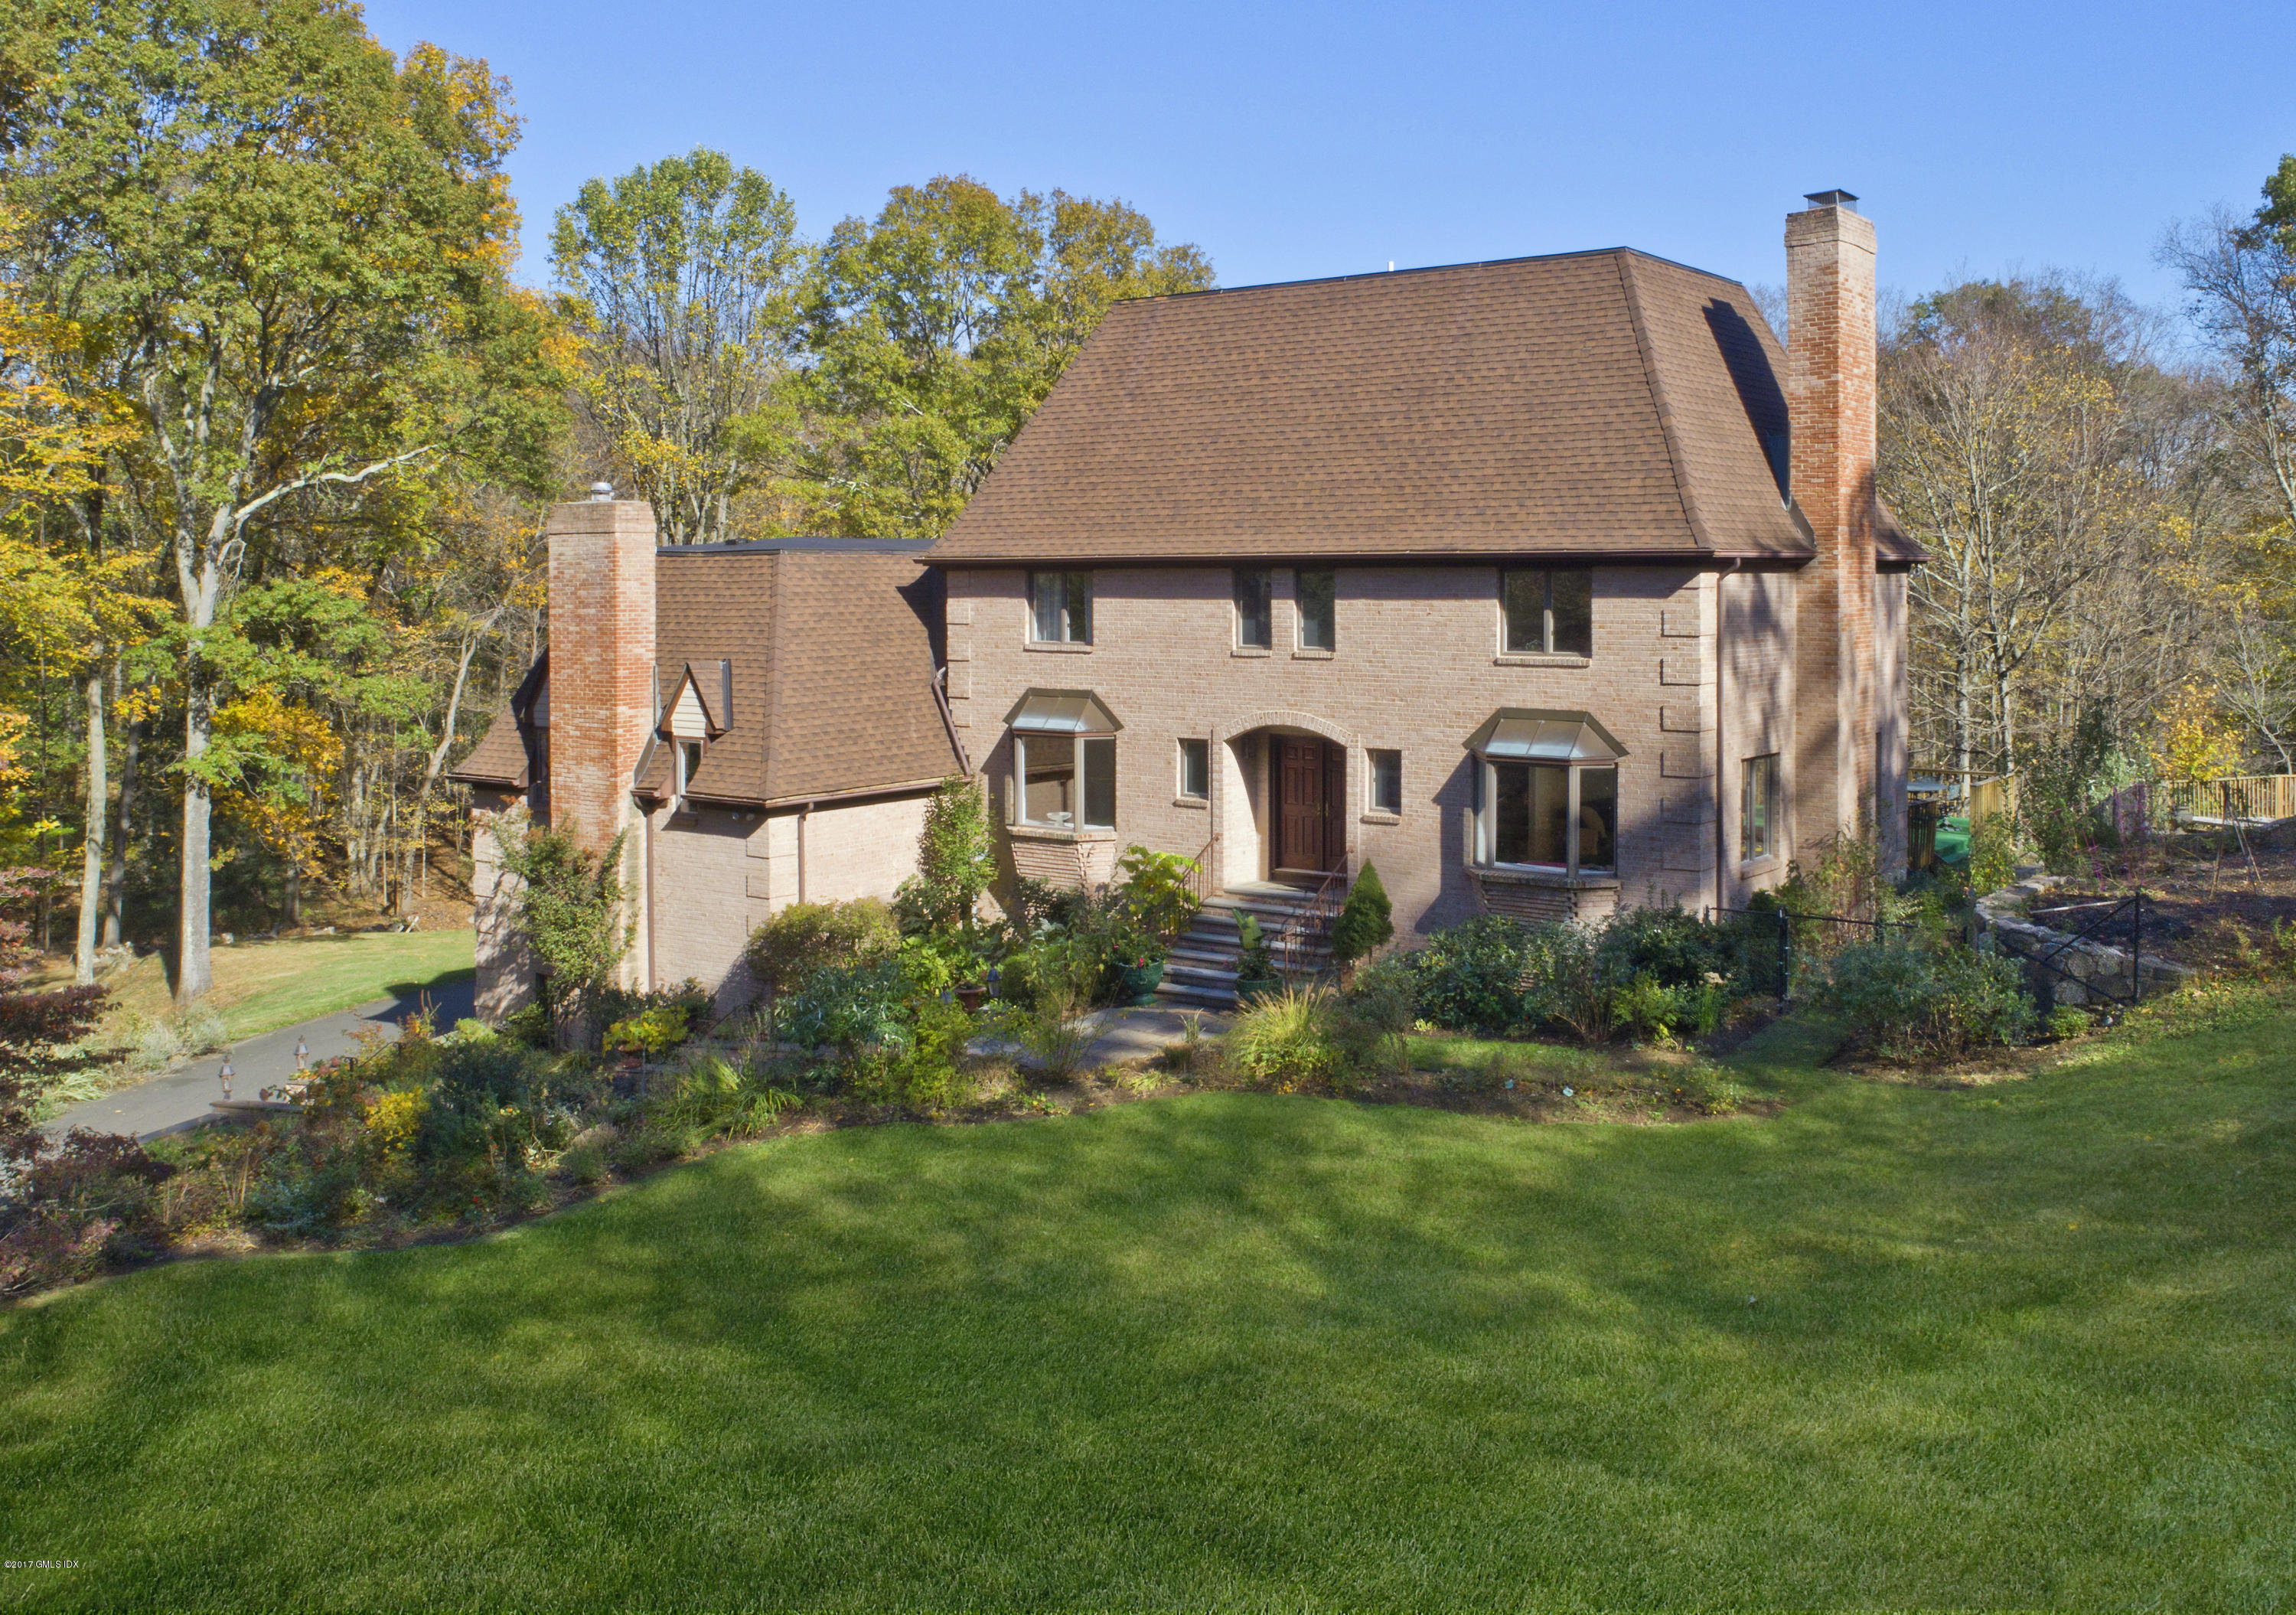 33 Ferncliff Road, Cos Cob, CT 06807